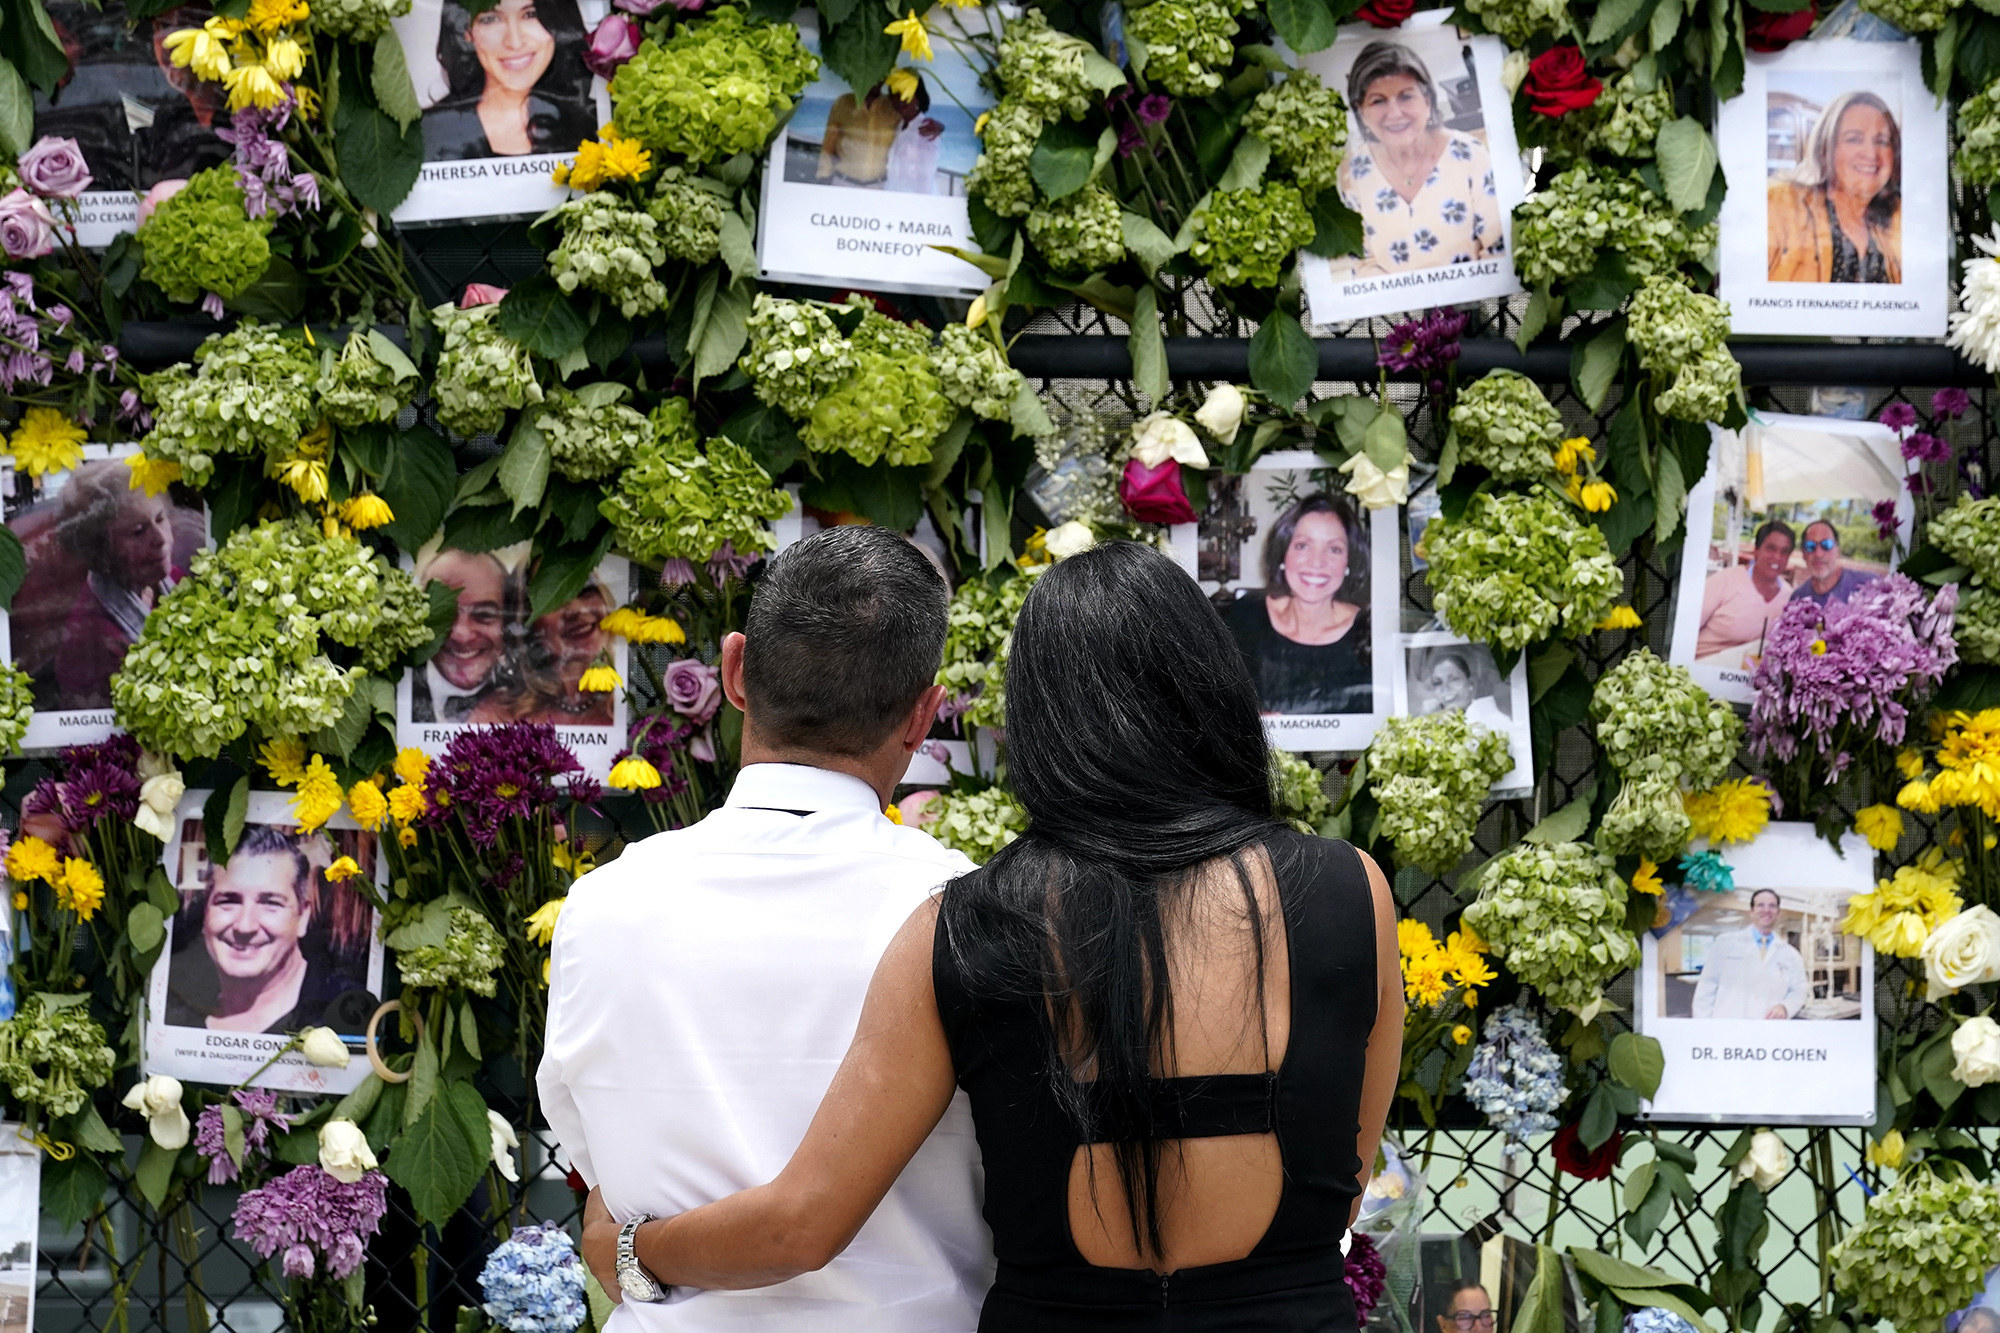 A couple embraces with their backs facing the camera, looking on at a photo memorial